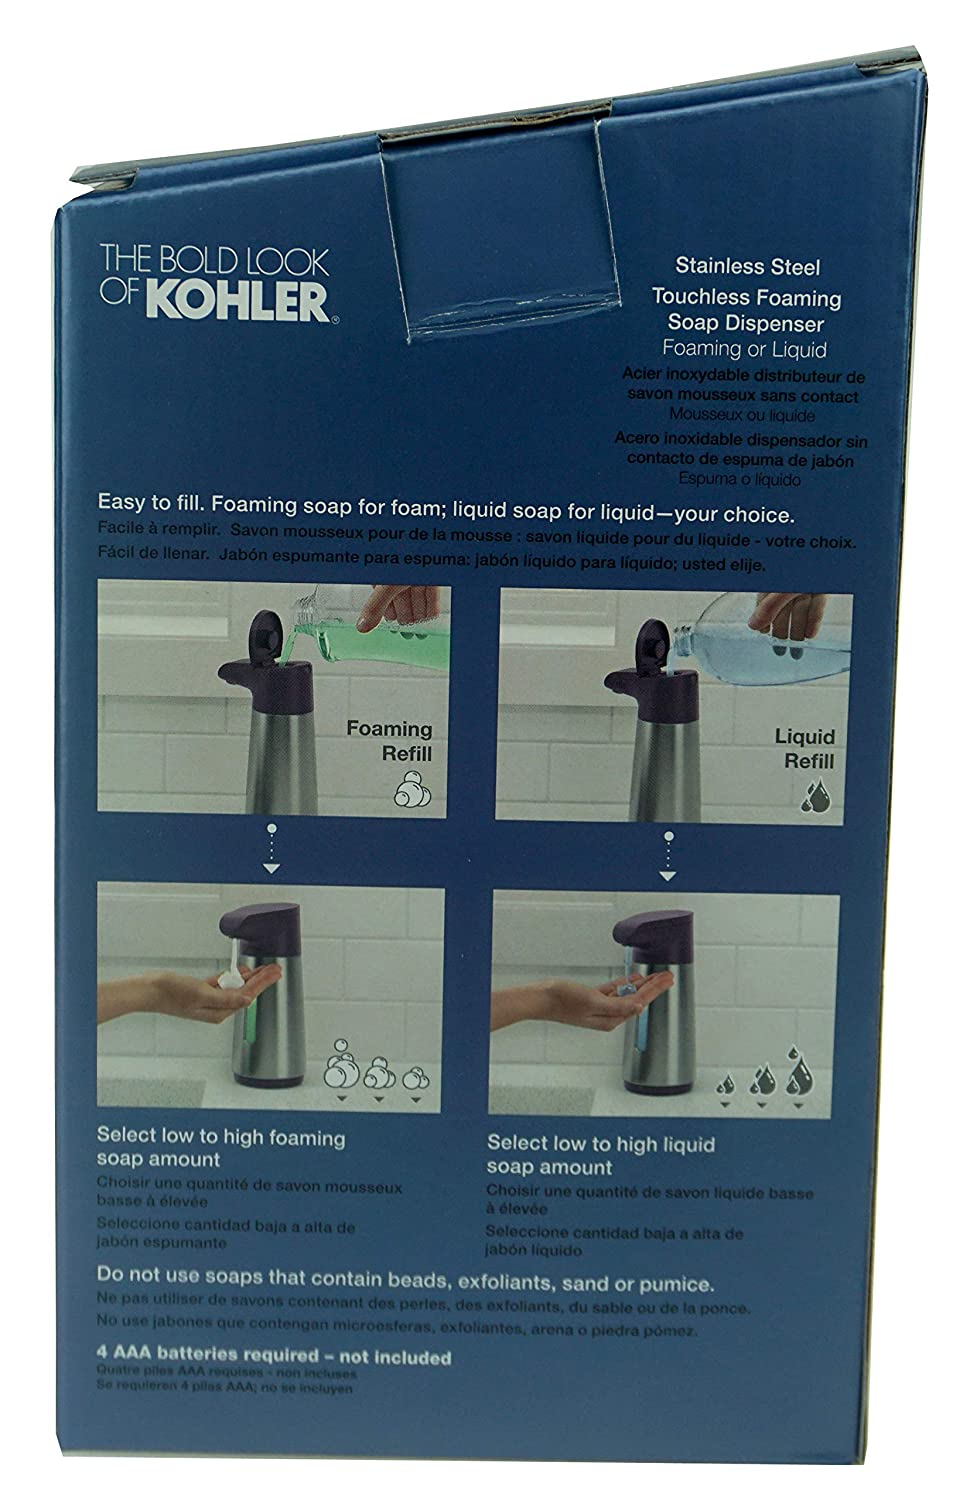 Amazon.com: Kohler Stainless Steel Touchless Foaming Soap Dispenser, Black Plum, 8.45 oz (250 ml): Home & Kitchen